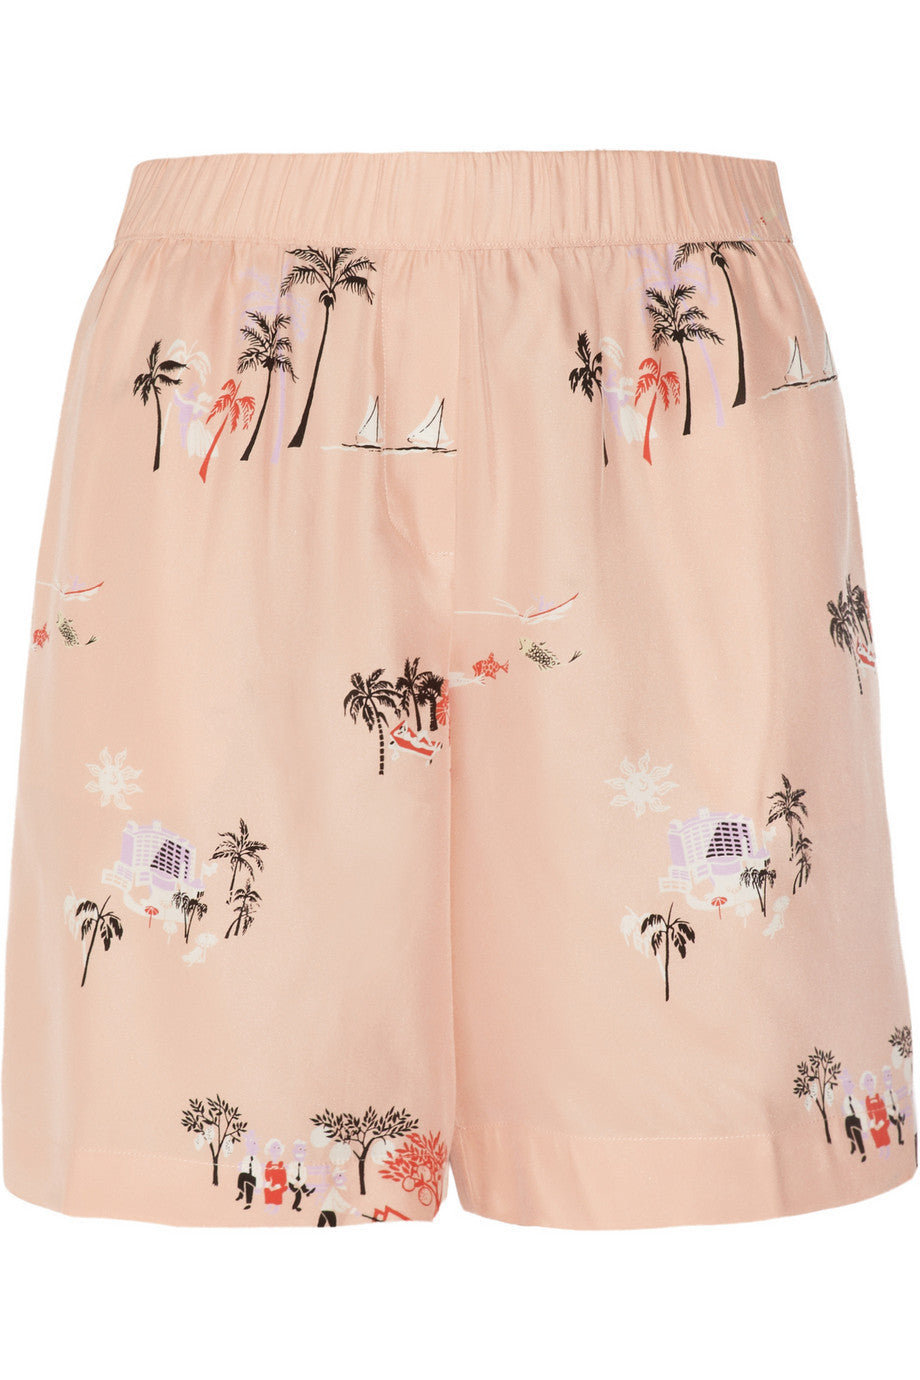 Vacationland printed silk shorts